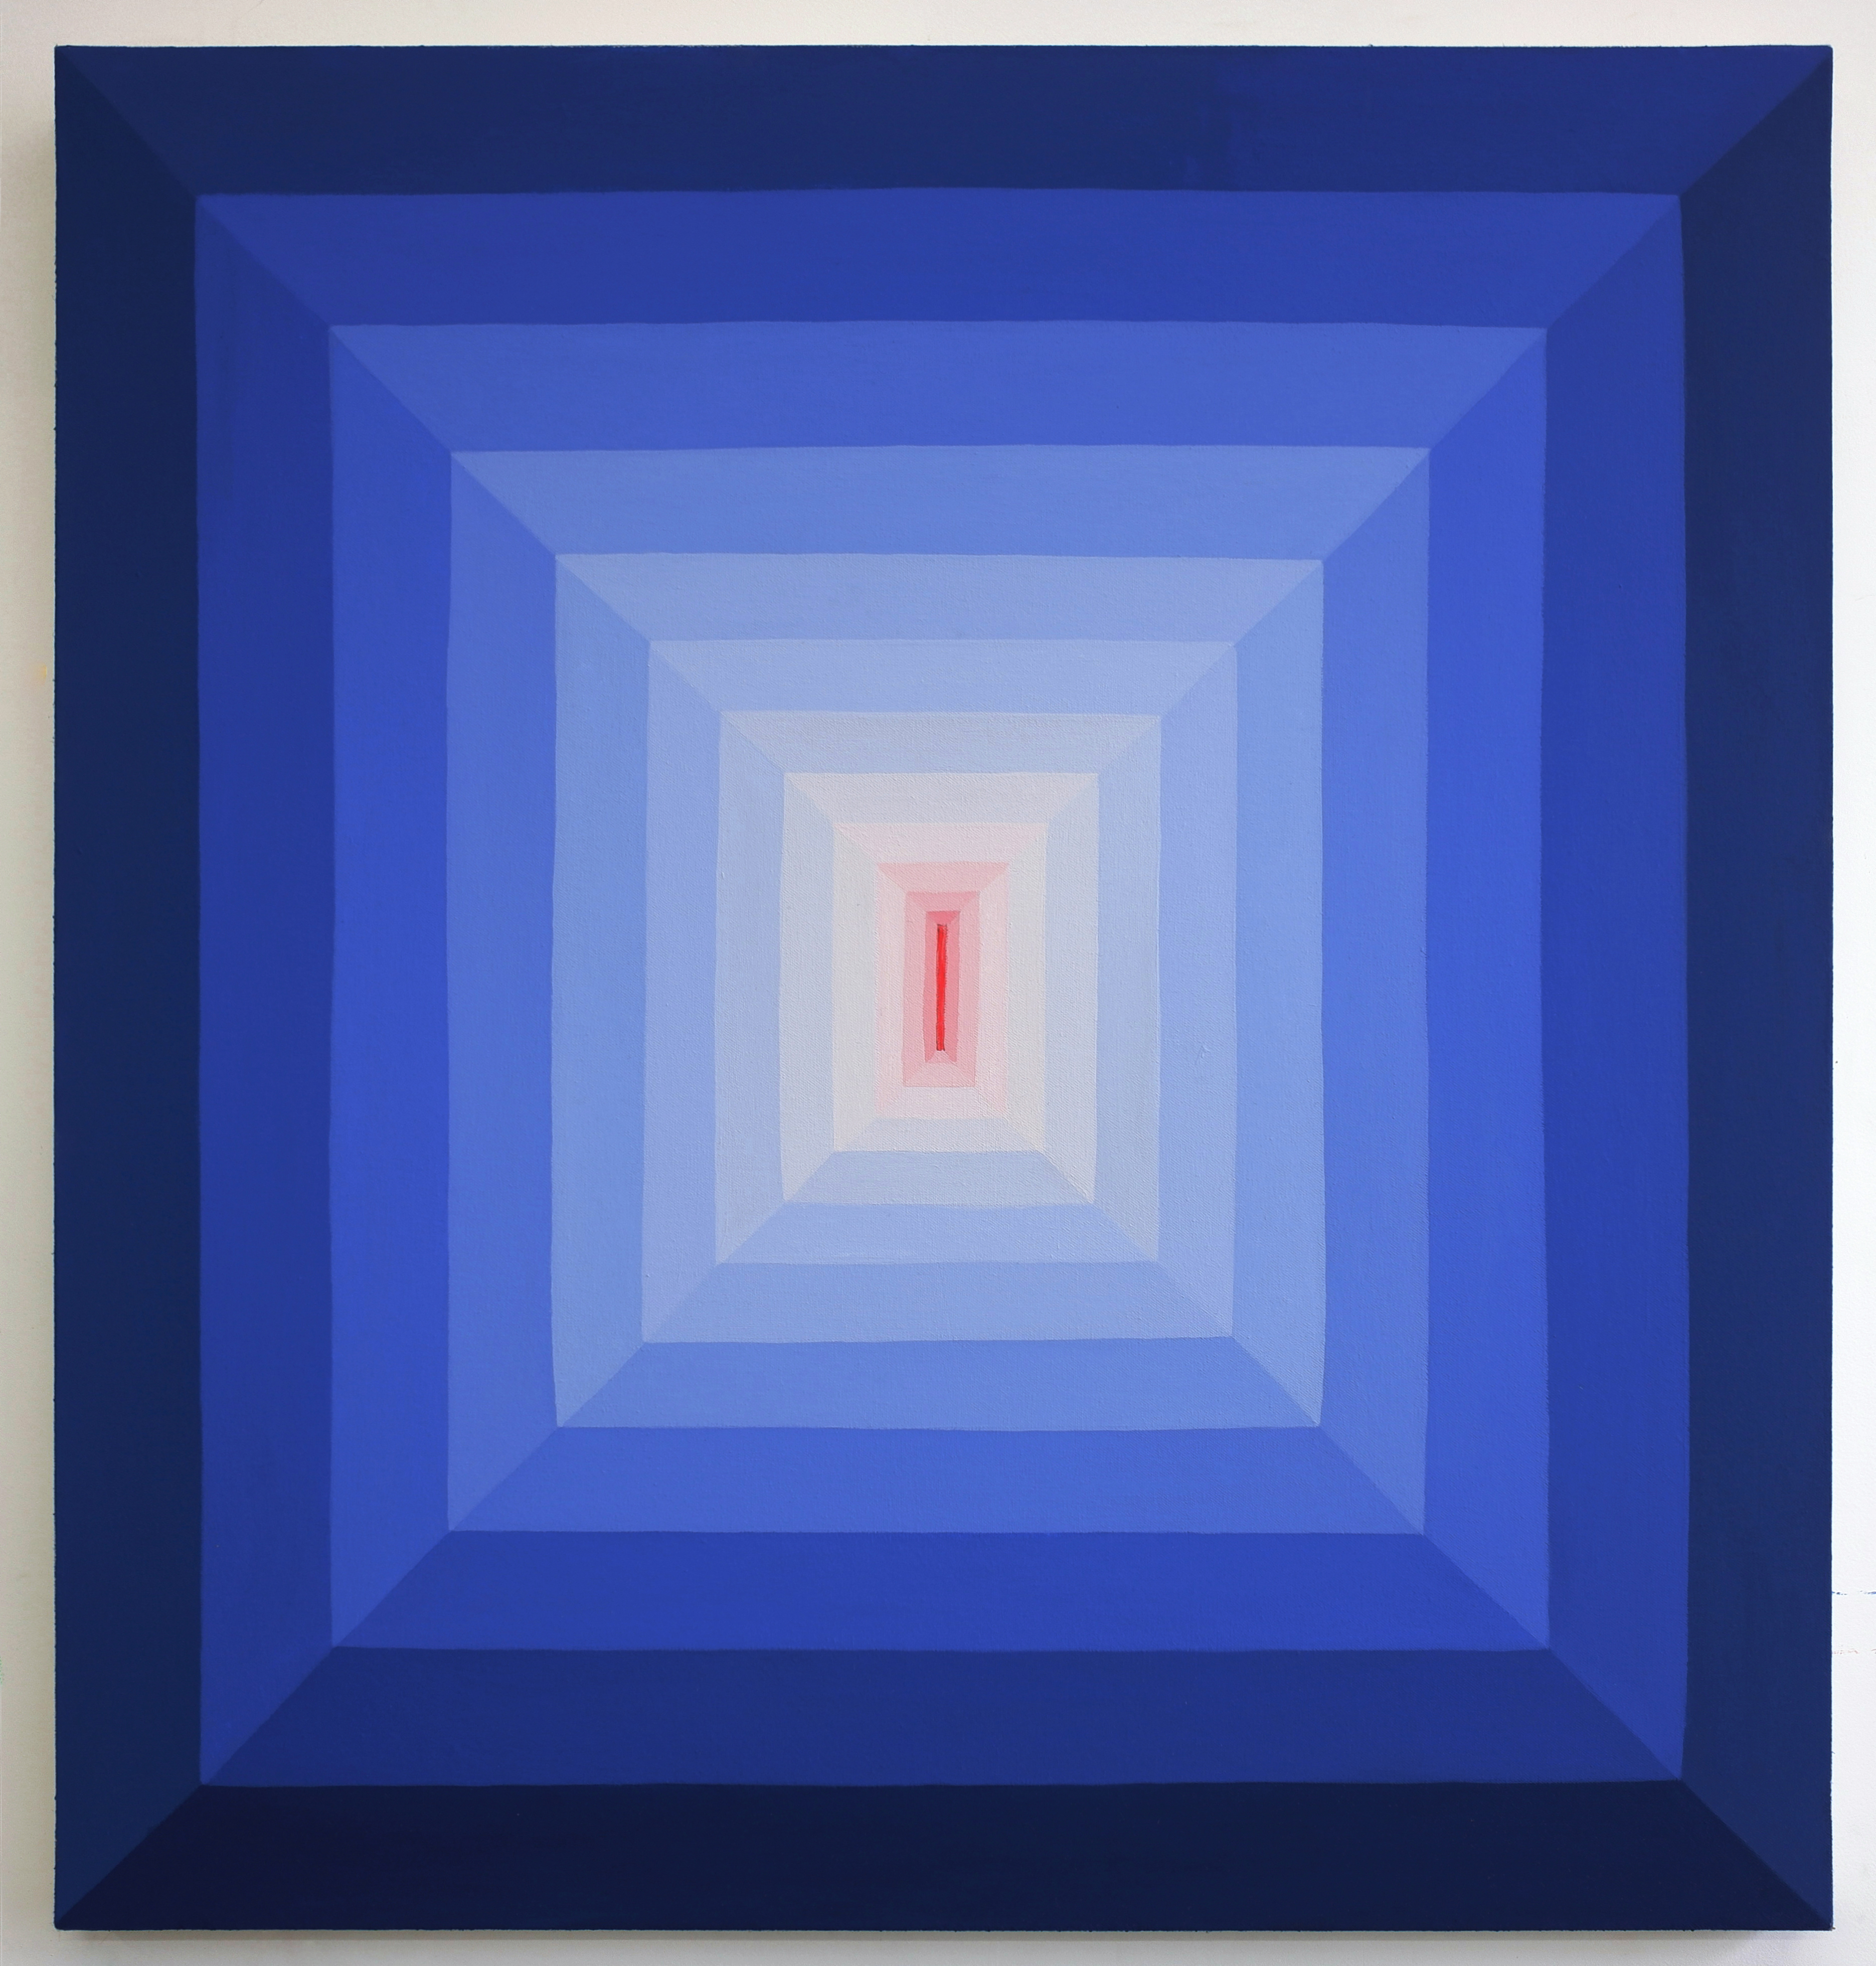 Corydon Cowansage, Hole 61, 2019, acrylic and vinyl paint on canvas, 32 x 30 inches